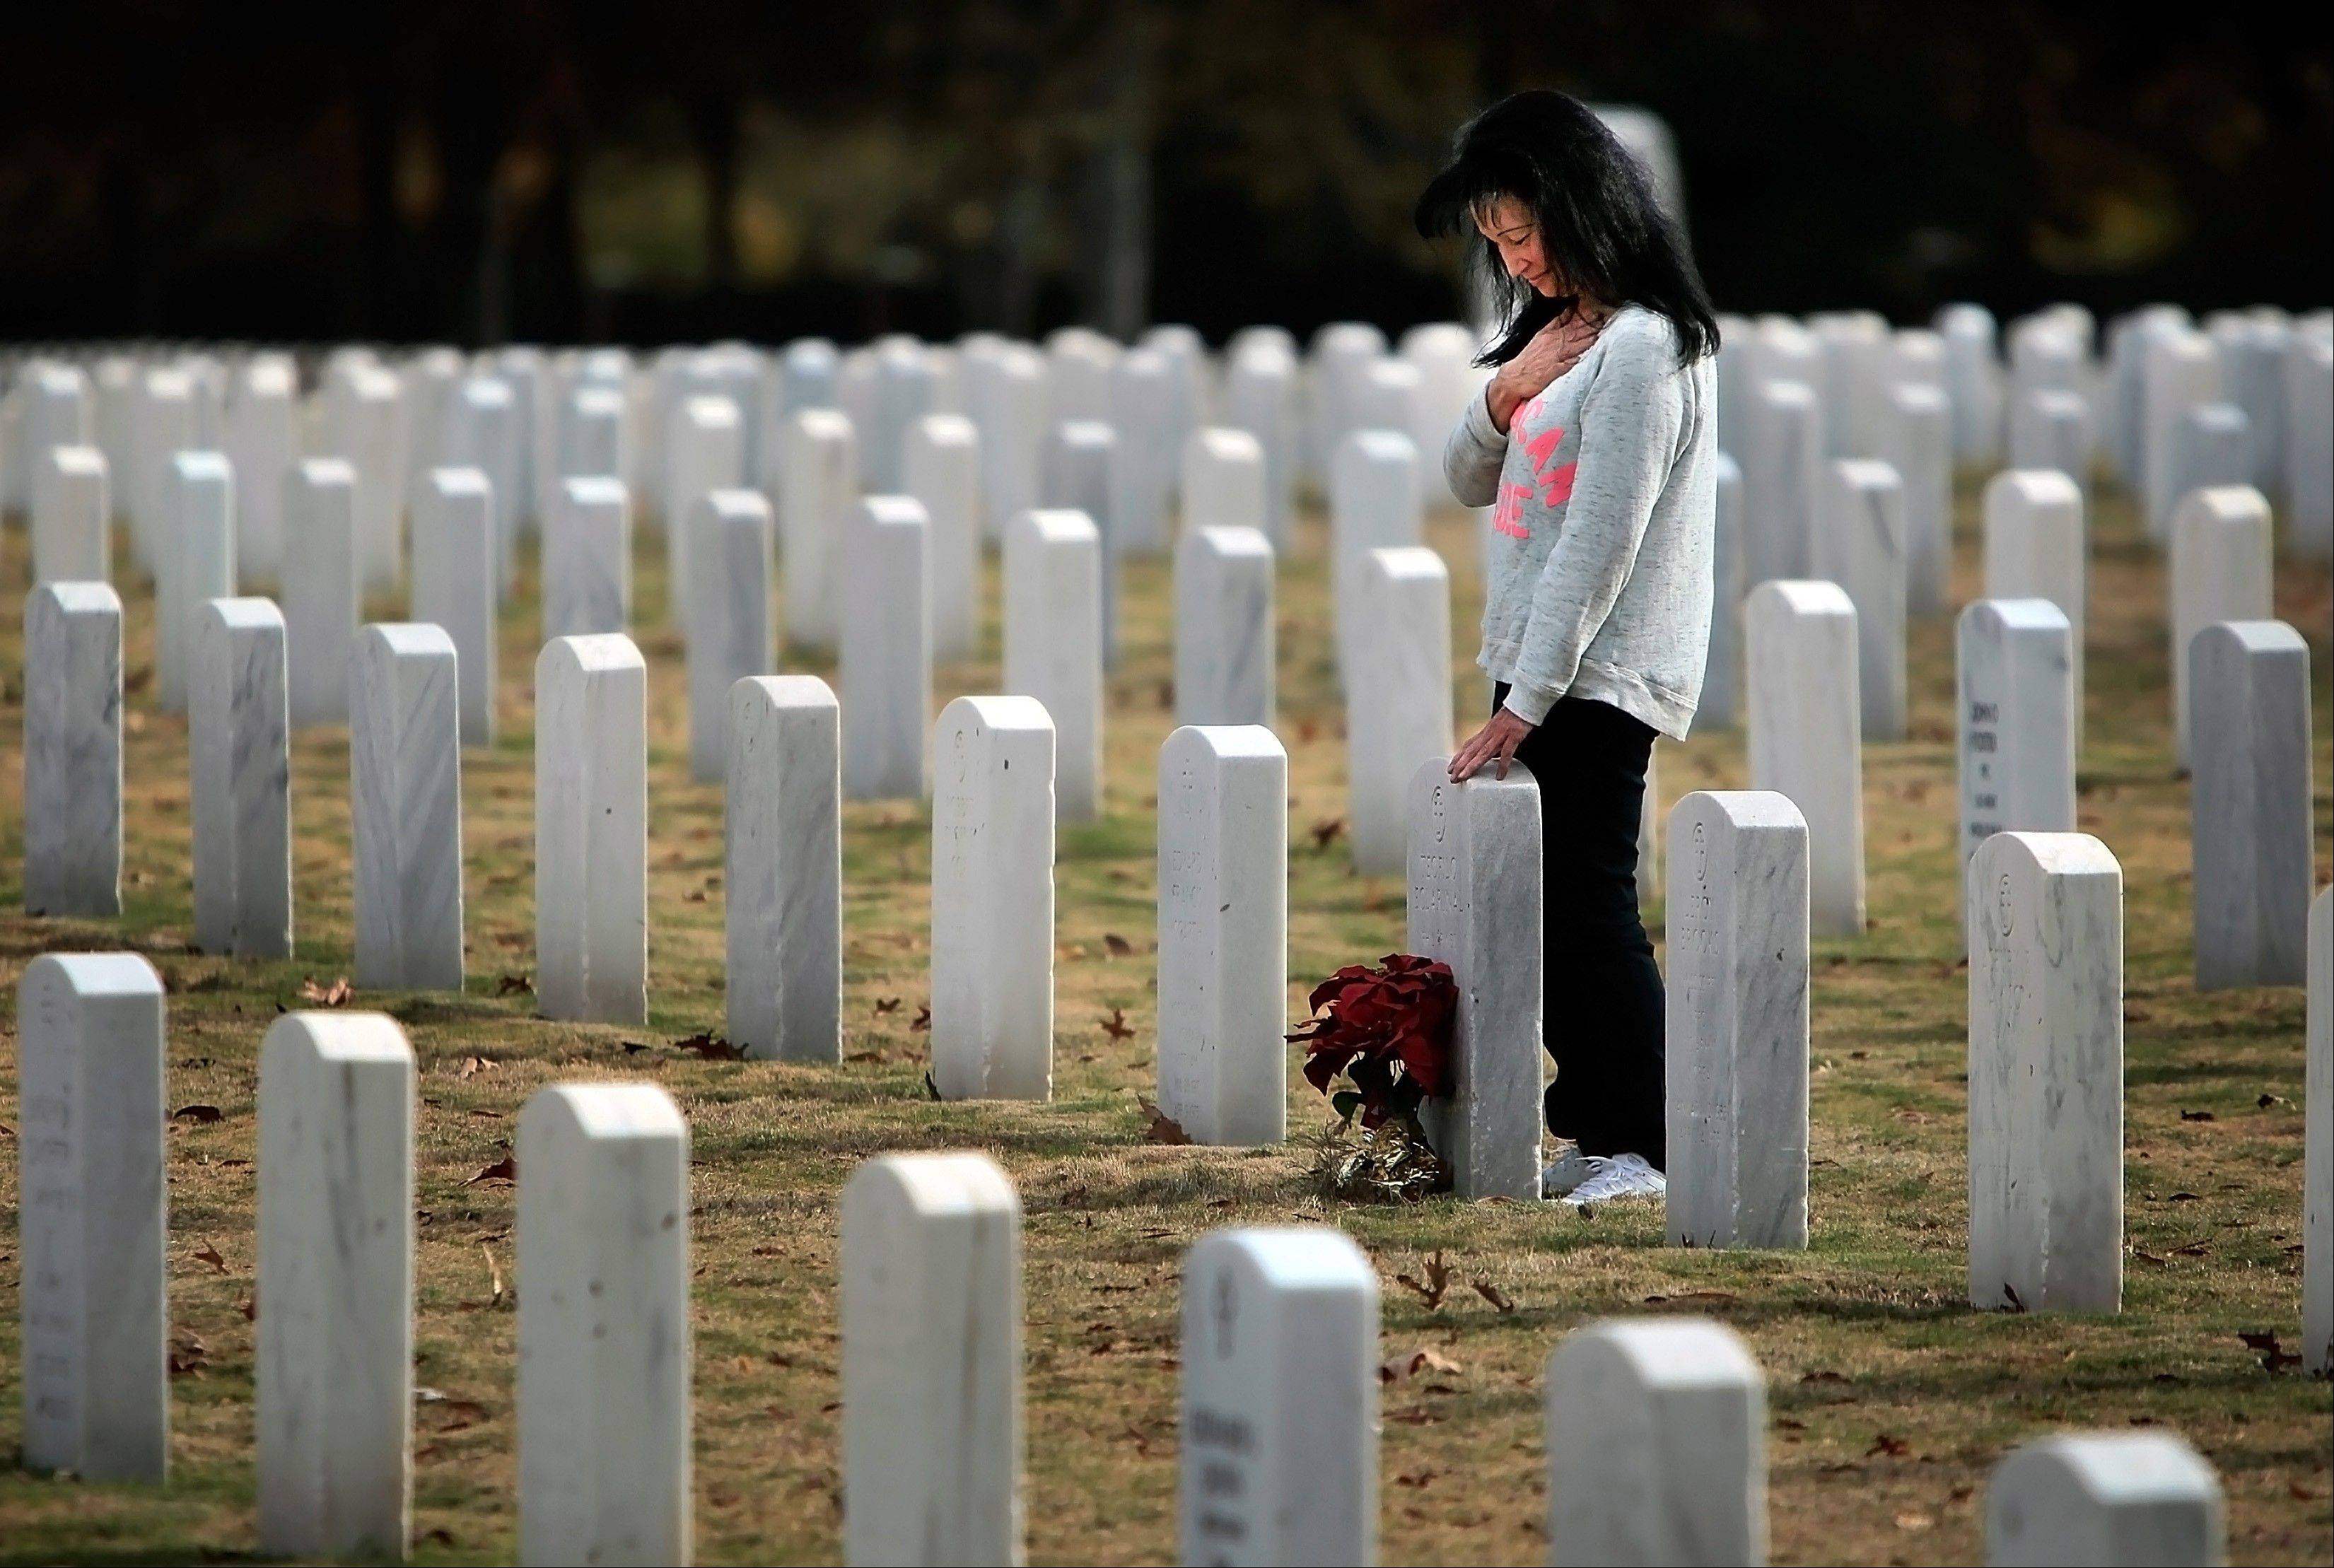 As a band nearby plays the National Anthem, Priscilla Eclarinal pays her respects to her father's grave at the annual Veterans Day ceremony at Memphis National Cemetery in Memphis, Tenn., Sunday. Her father, Chief Petty Officer Teofilo Eclarinal, served for 30 years in the U.S. Navy fighting in both World War II and Korea.